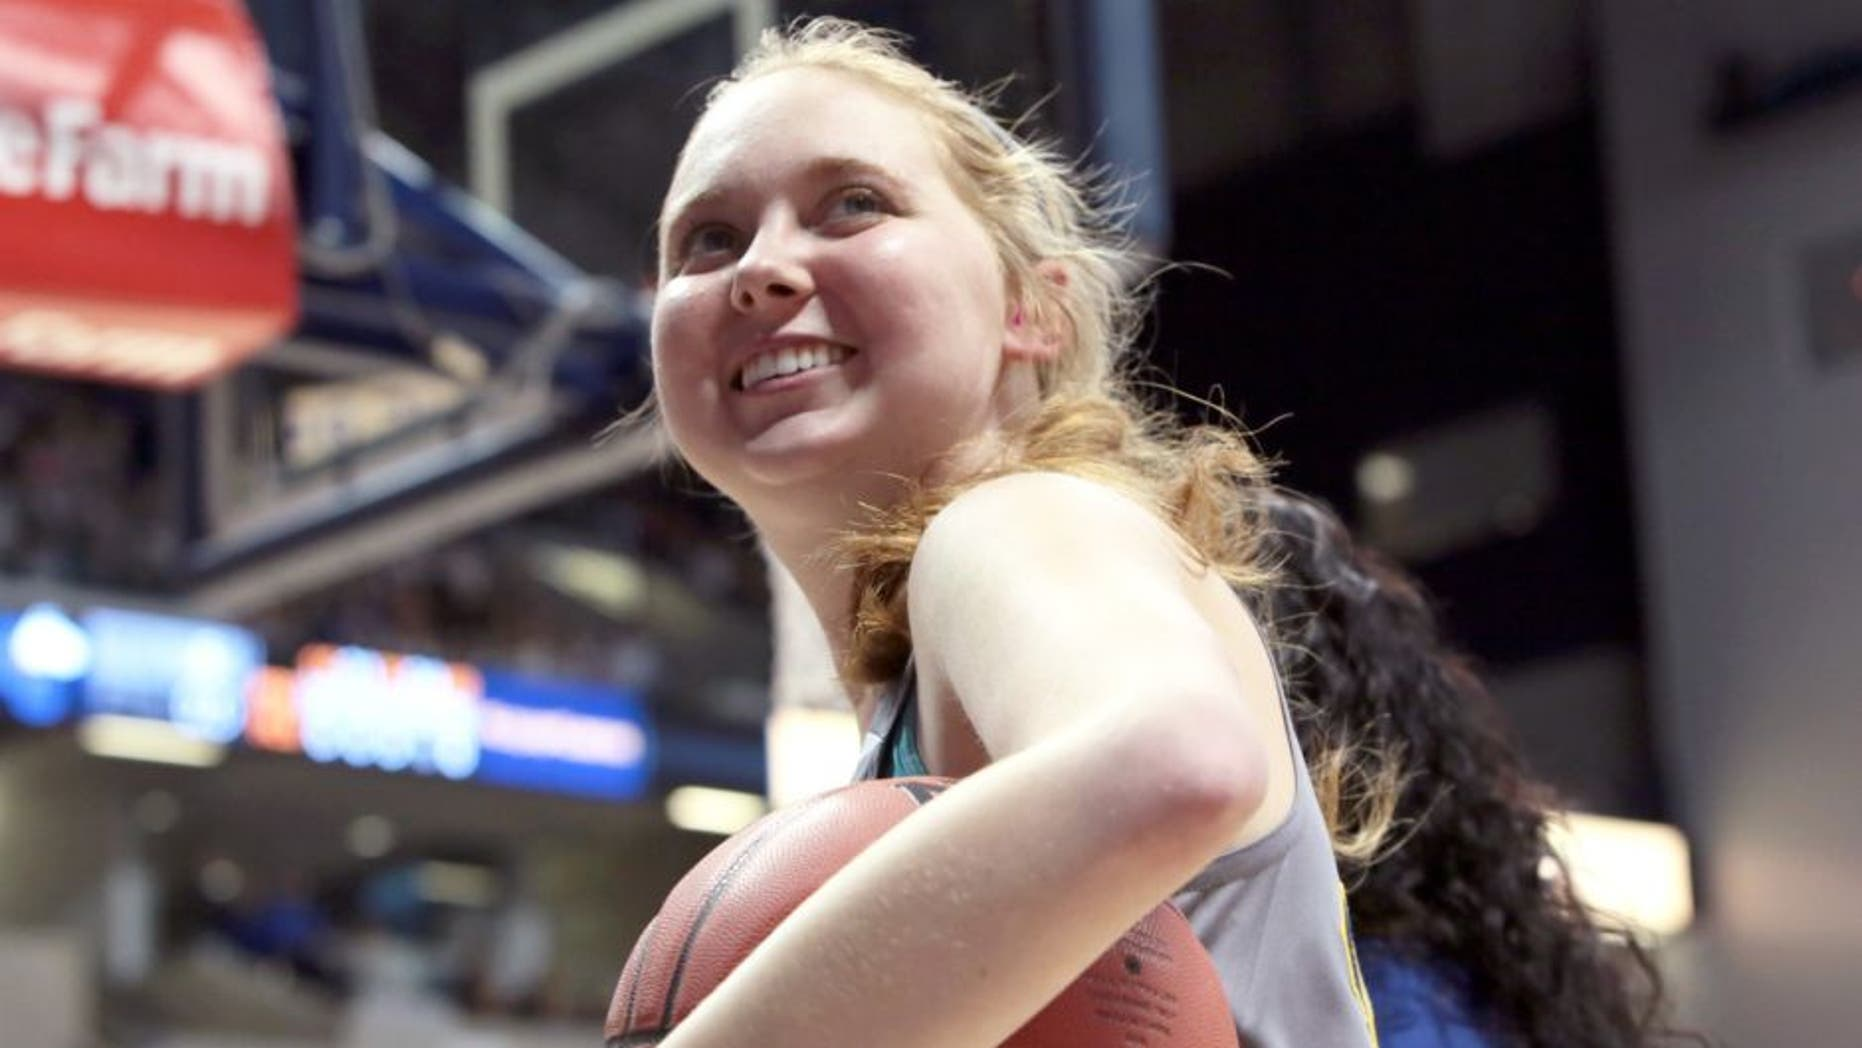 CINCINNATI - NOVEMBER 2: Freshman Lauren Hill of Mount St. Joseph smiles during a game at Xavier University in Cincinnati Ohio at the Cintas Center. NOTE TO USER: User expressly acknowledges and agrees that, by downloading and or using this Photograph, user is consenting to the terms and condition of the Getty Images License Agreement. Mandatory Copyright Notice: 2014 NBAE (Photo by Ron Hoskins/NBAE via Getty Images)